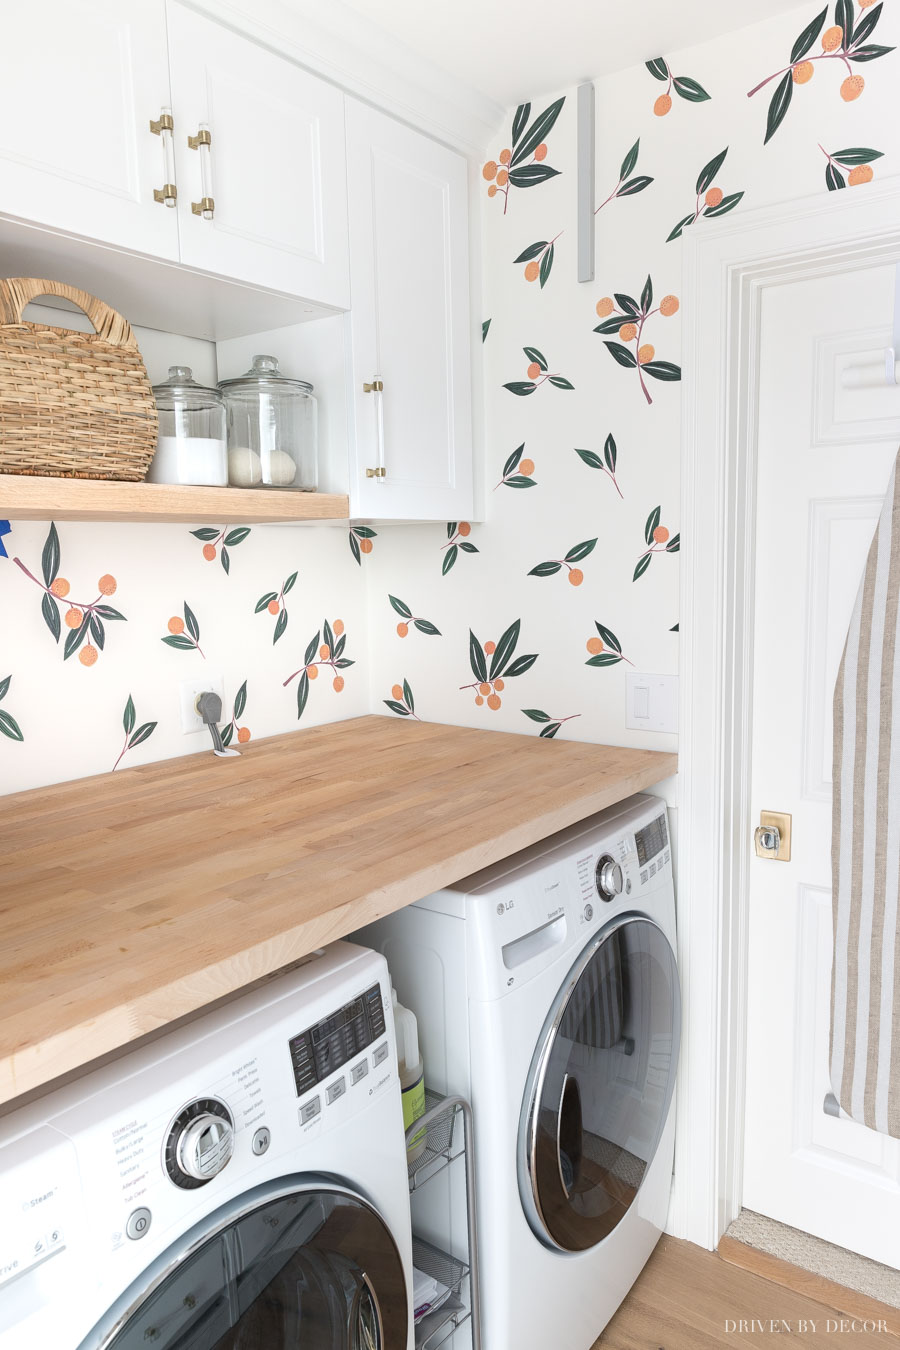 These vinyl wall decals are such a cute and easy way to dress up a space like this laundry room!